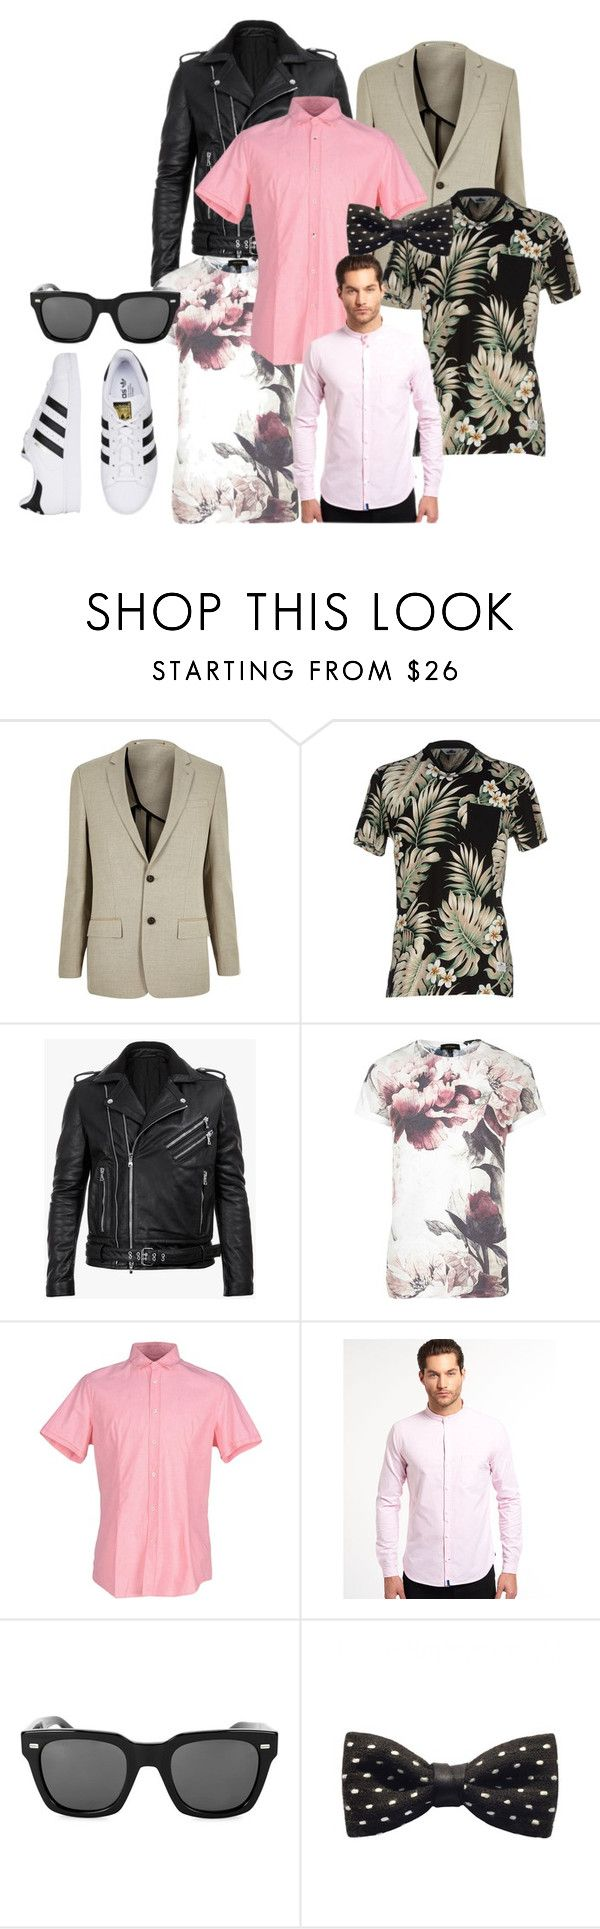 """night"" by rismasansella on Polyvore featuring River Island, Penfield, Balmain, Daniele Alessandrini, Superdry, Gucci, ZuZu Kim, mens, men and men's wear"